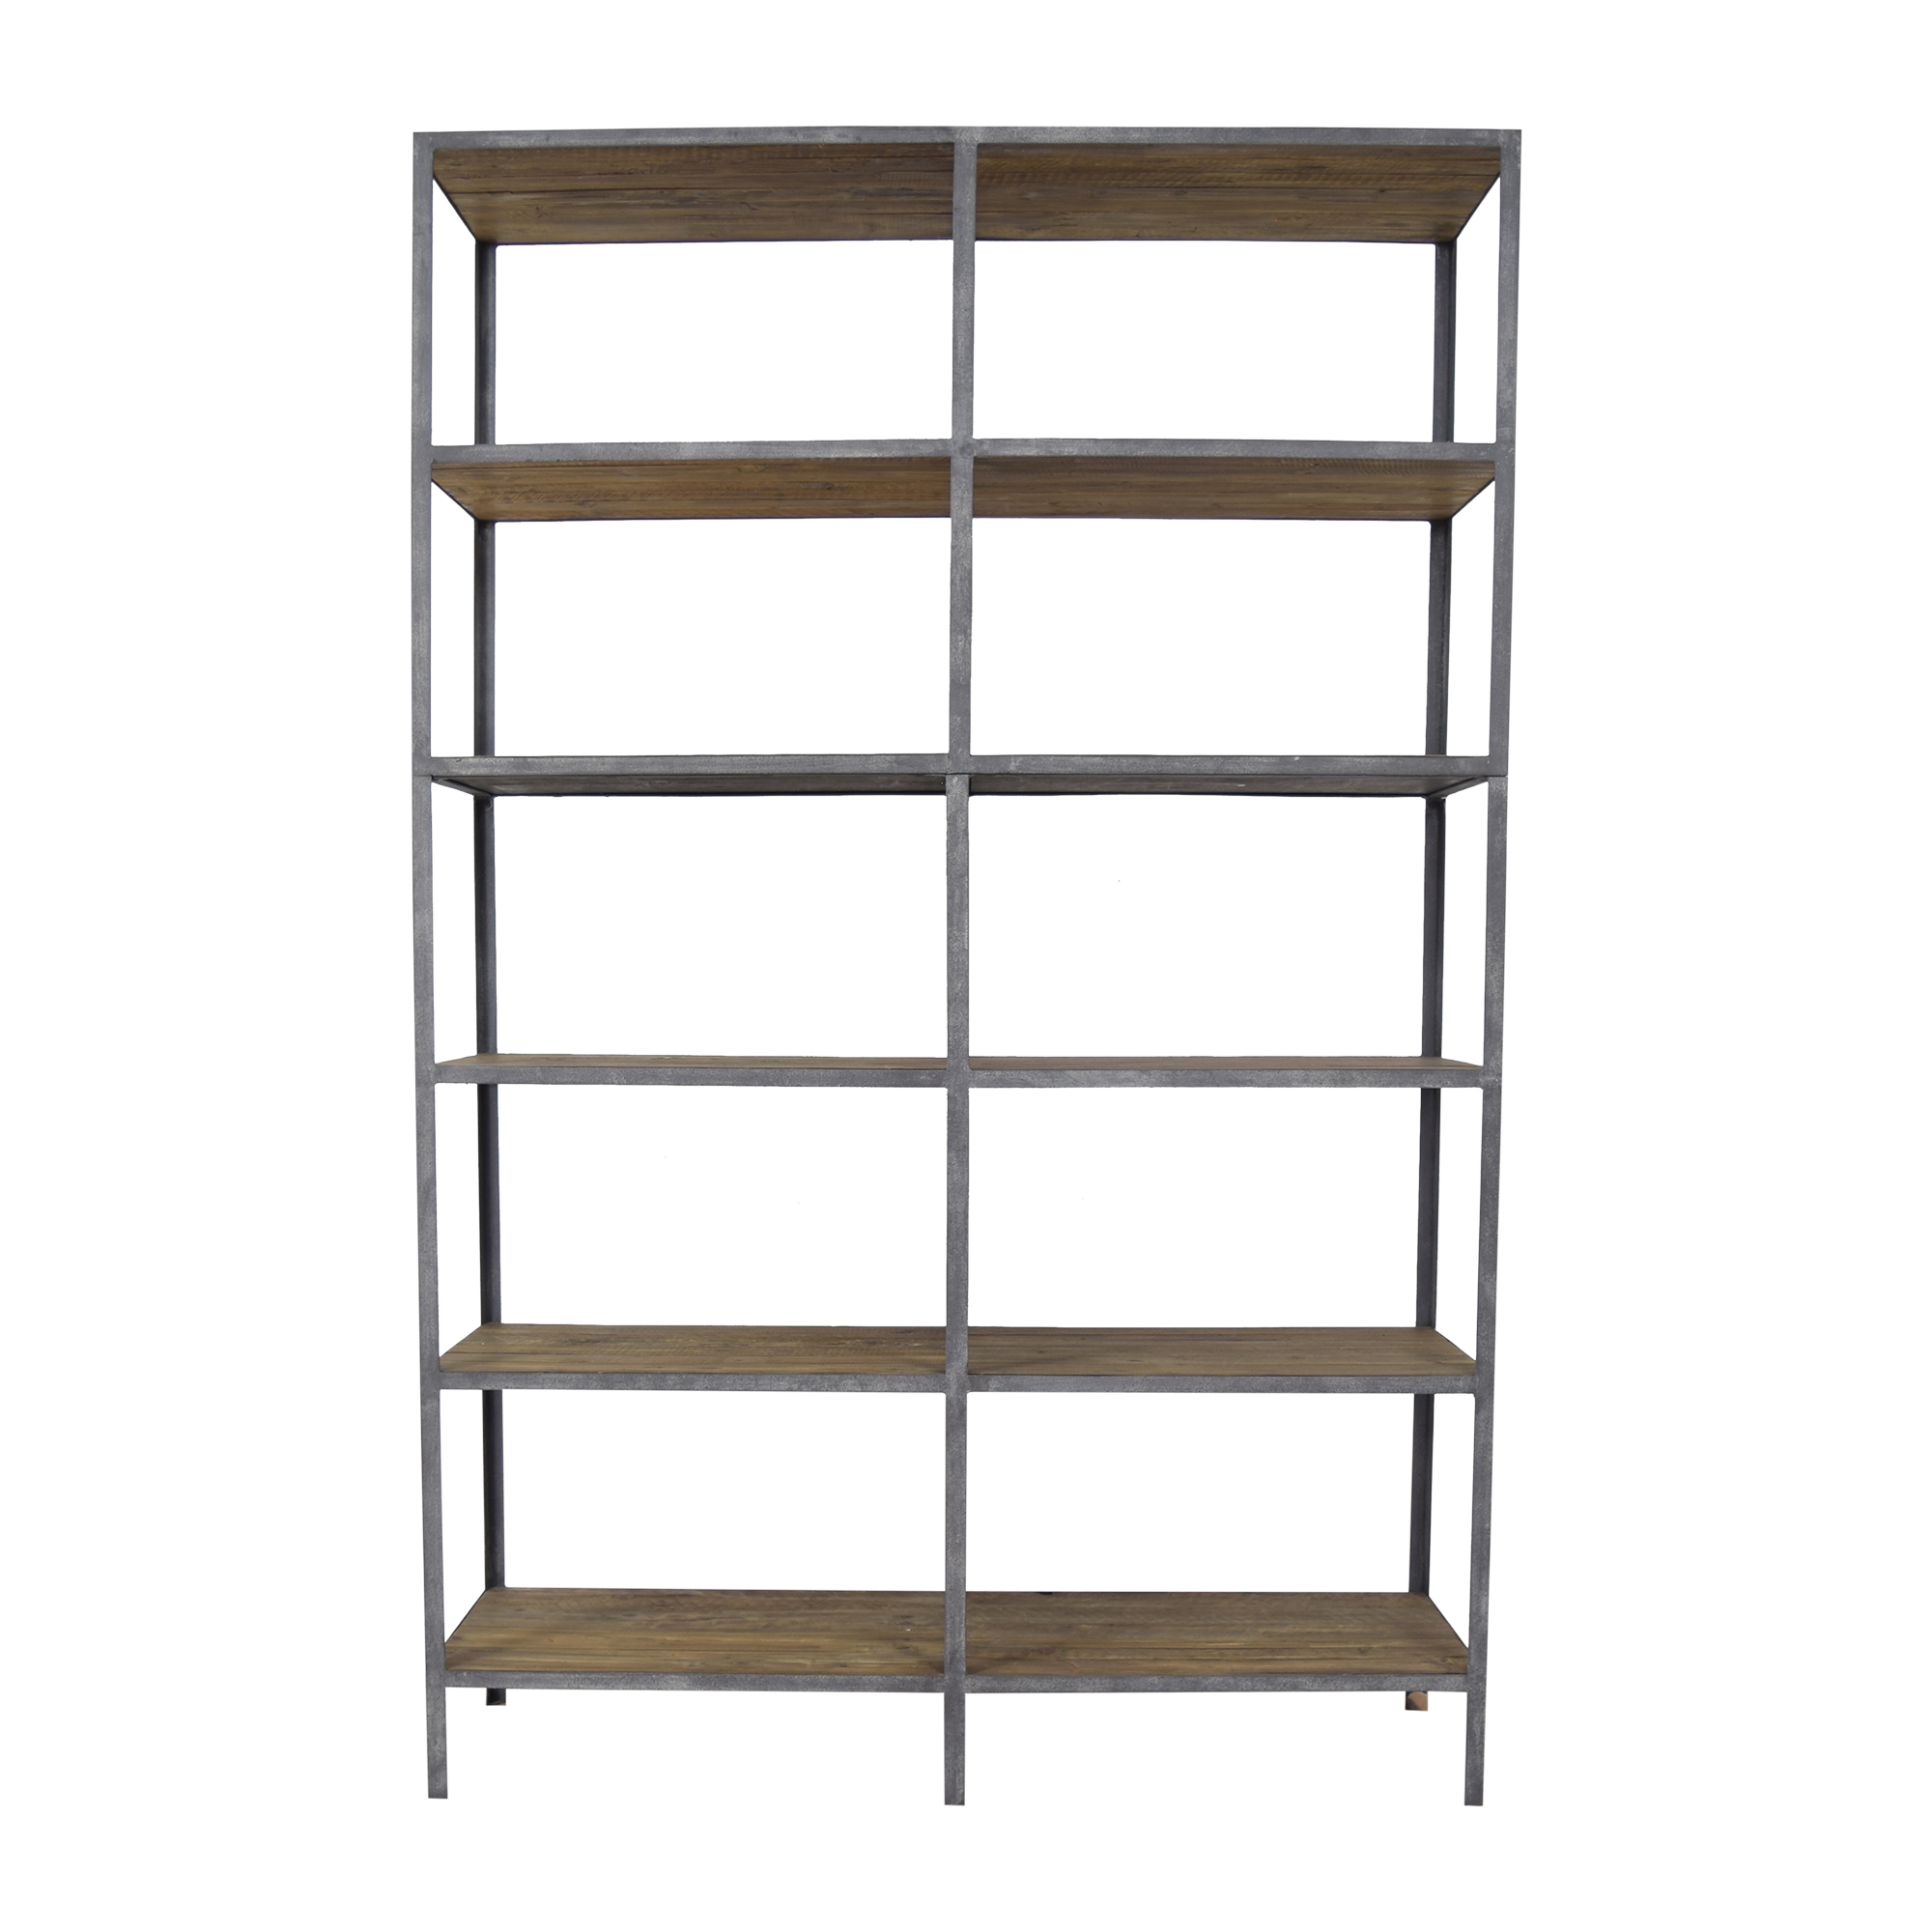 Restoration Hardware Restoration Hardware Double Shelving for sale